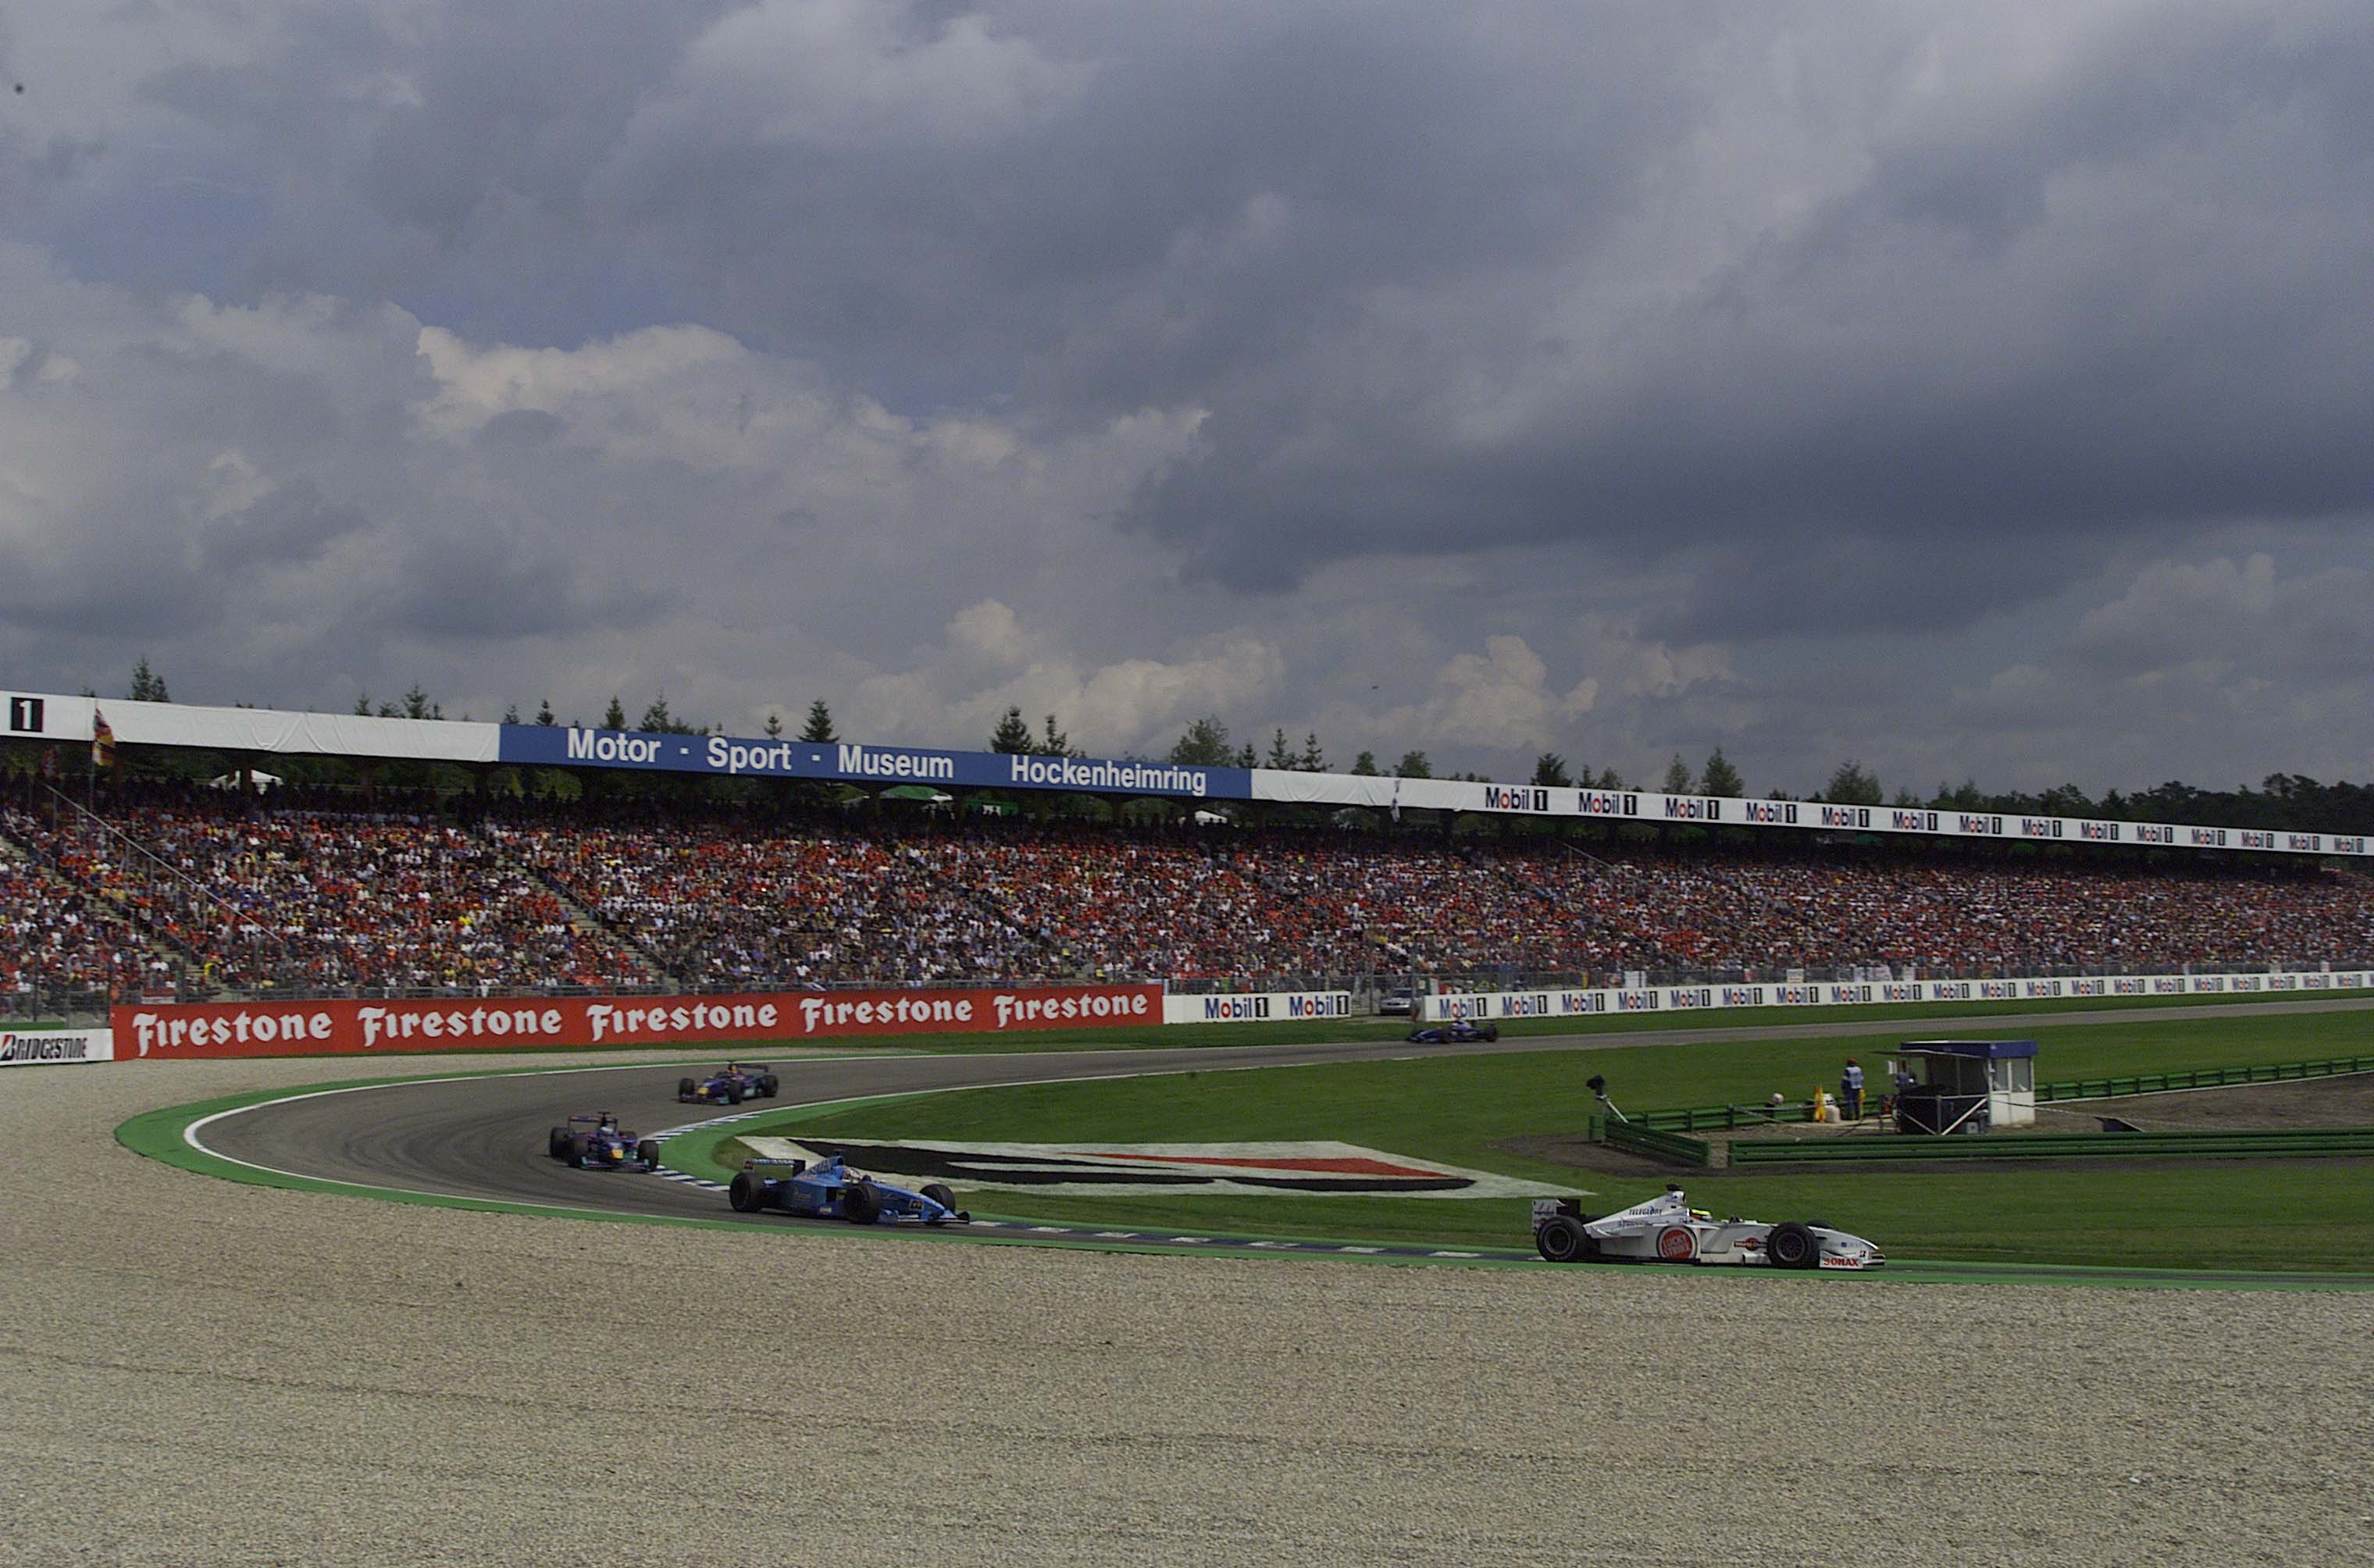 http://www.northlodge.org/f1/2000/bar/bar-2000-07-30-hockenheim.jpg